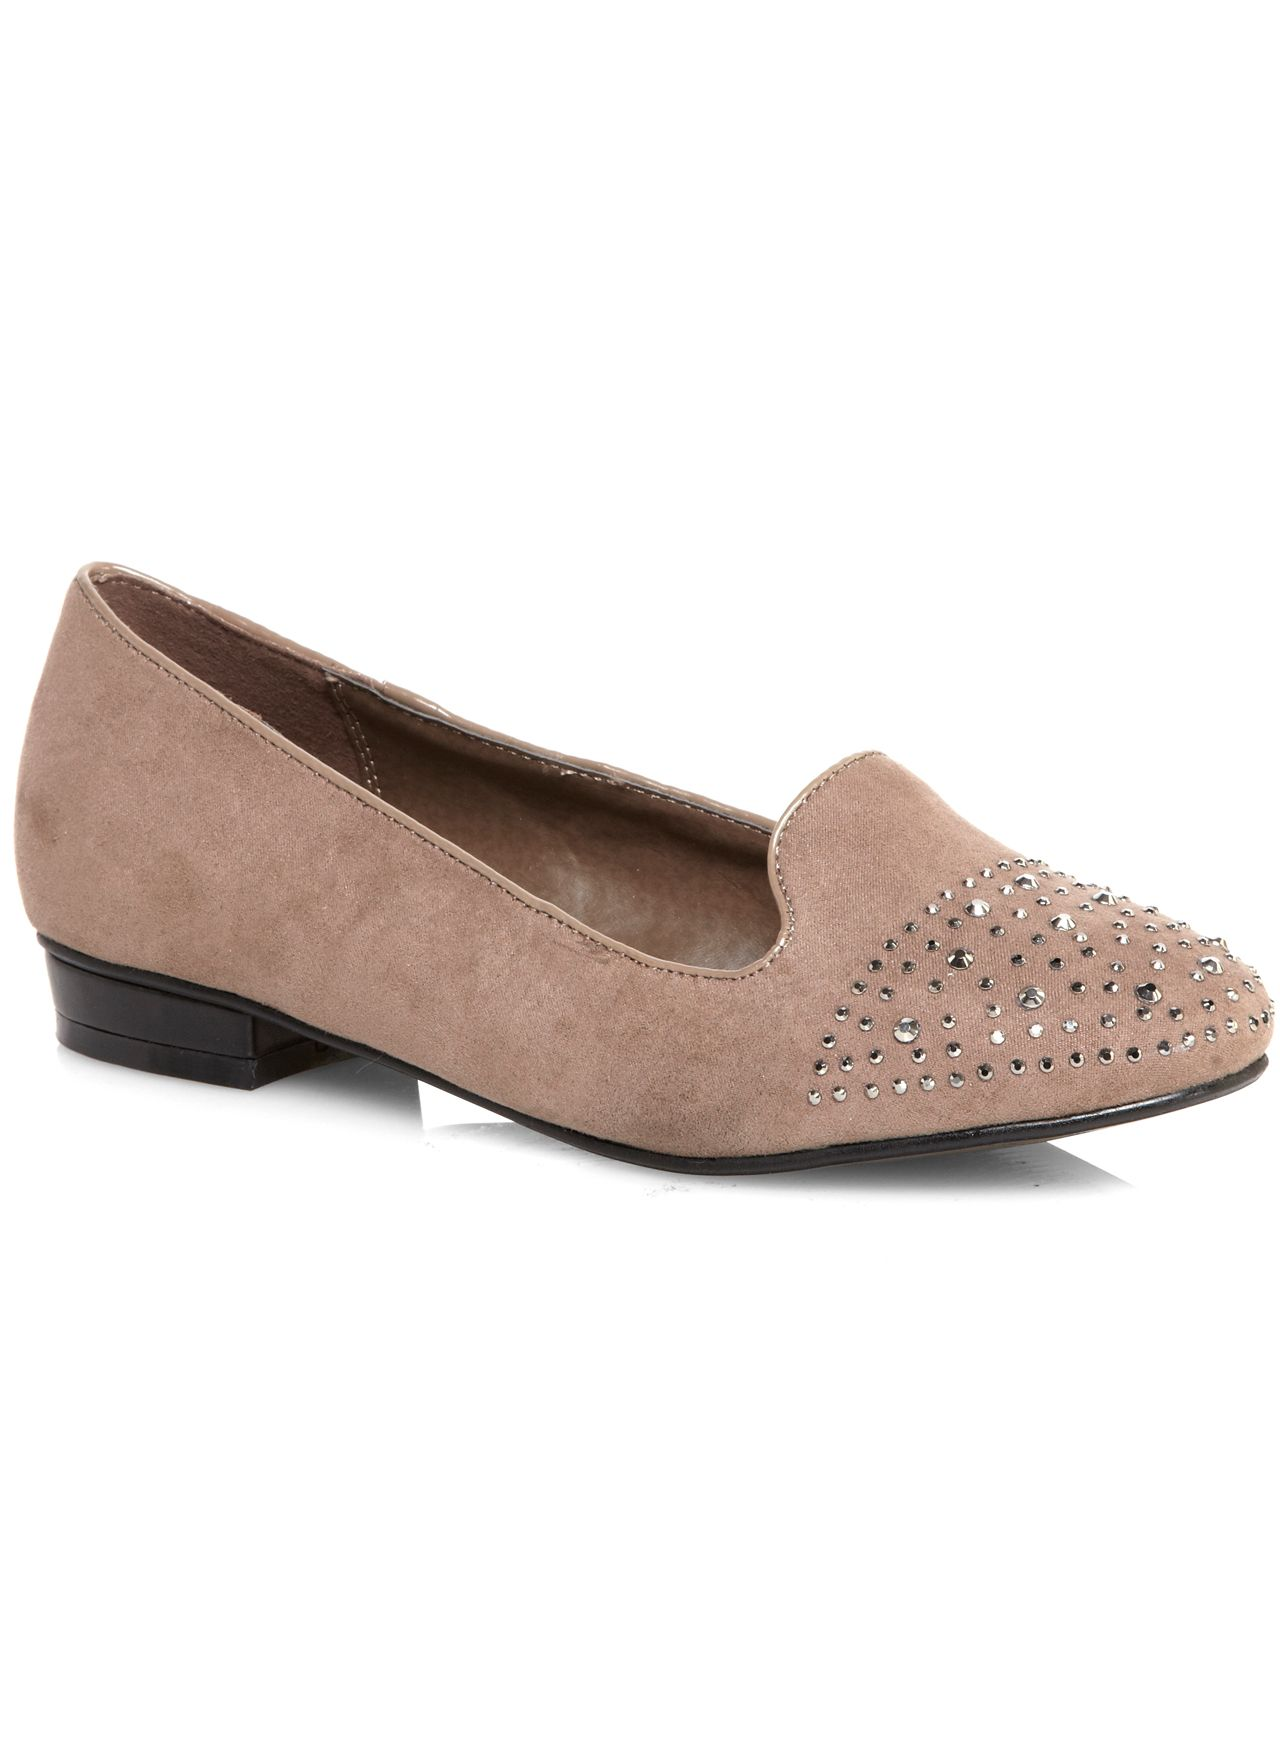 Mink Jewel Toe Slipper Pump